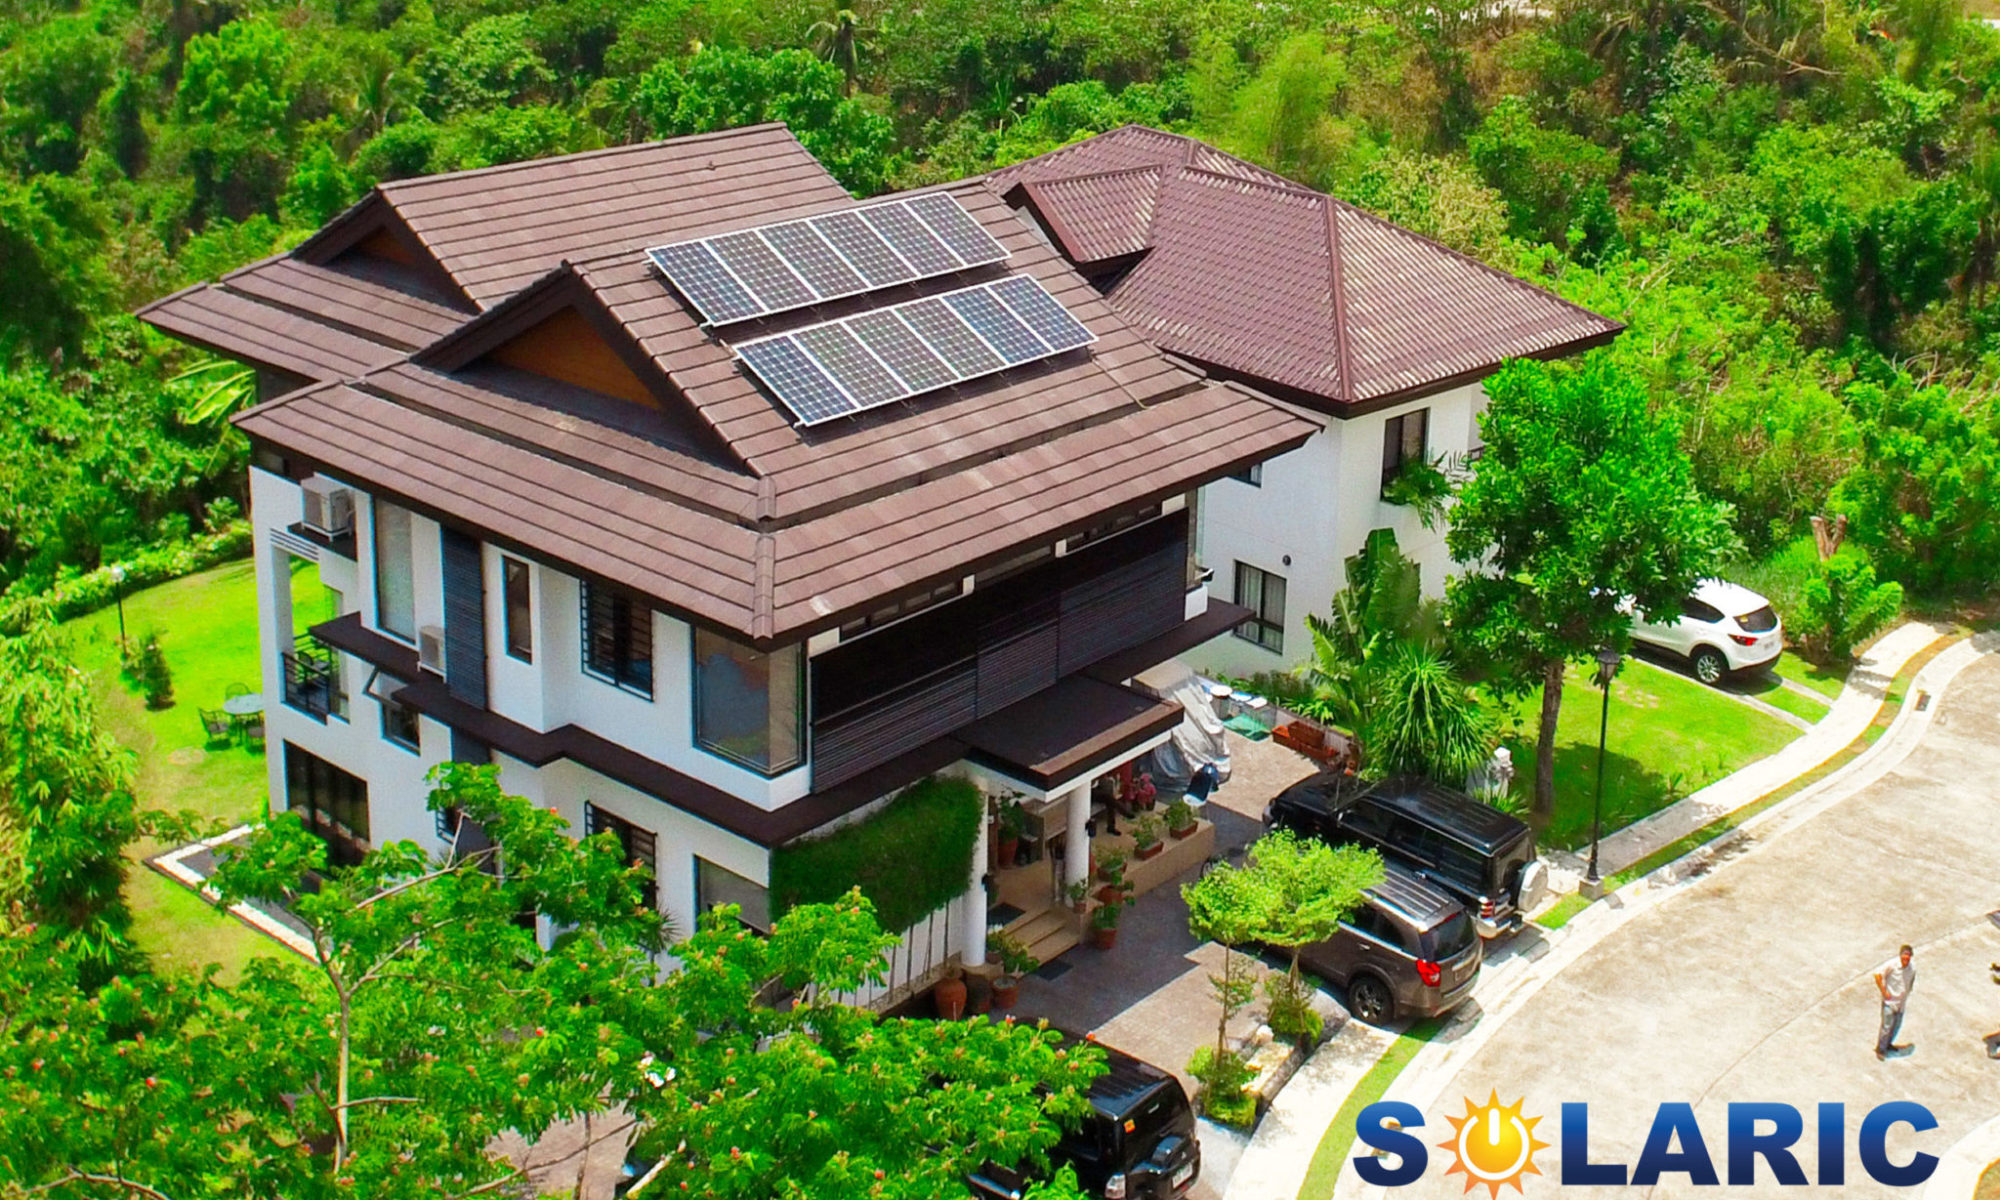 WHAT FACTORS INFLUENCE THE COST OF SOLAR?